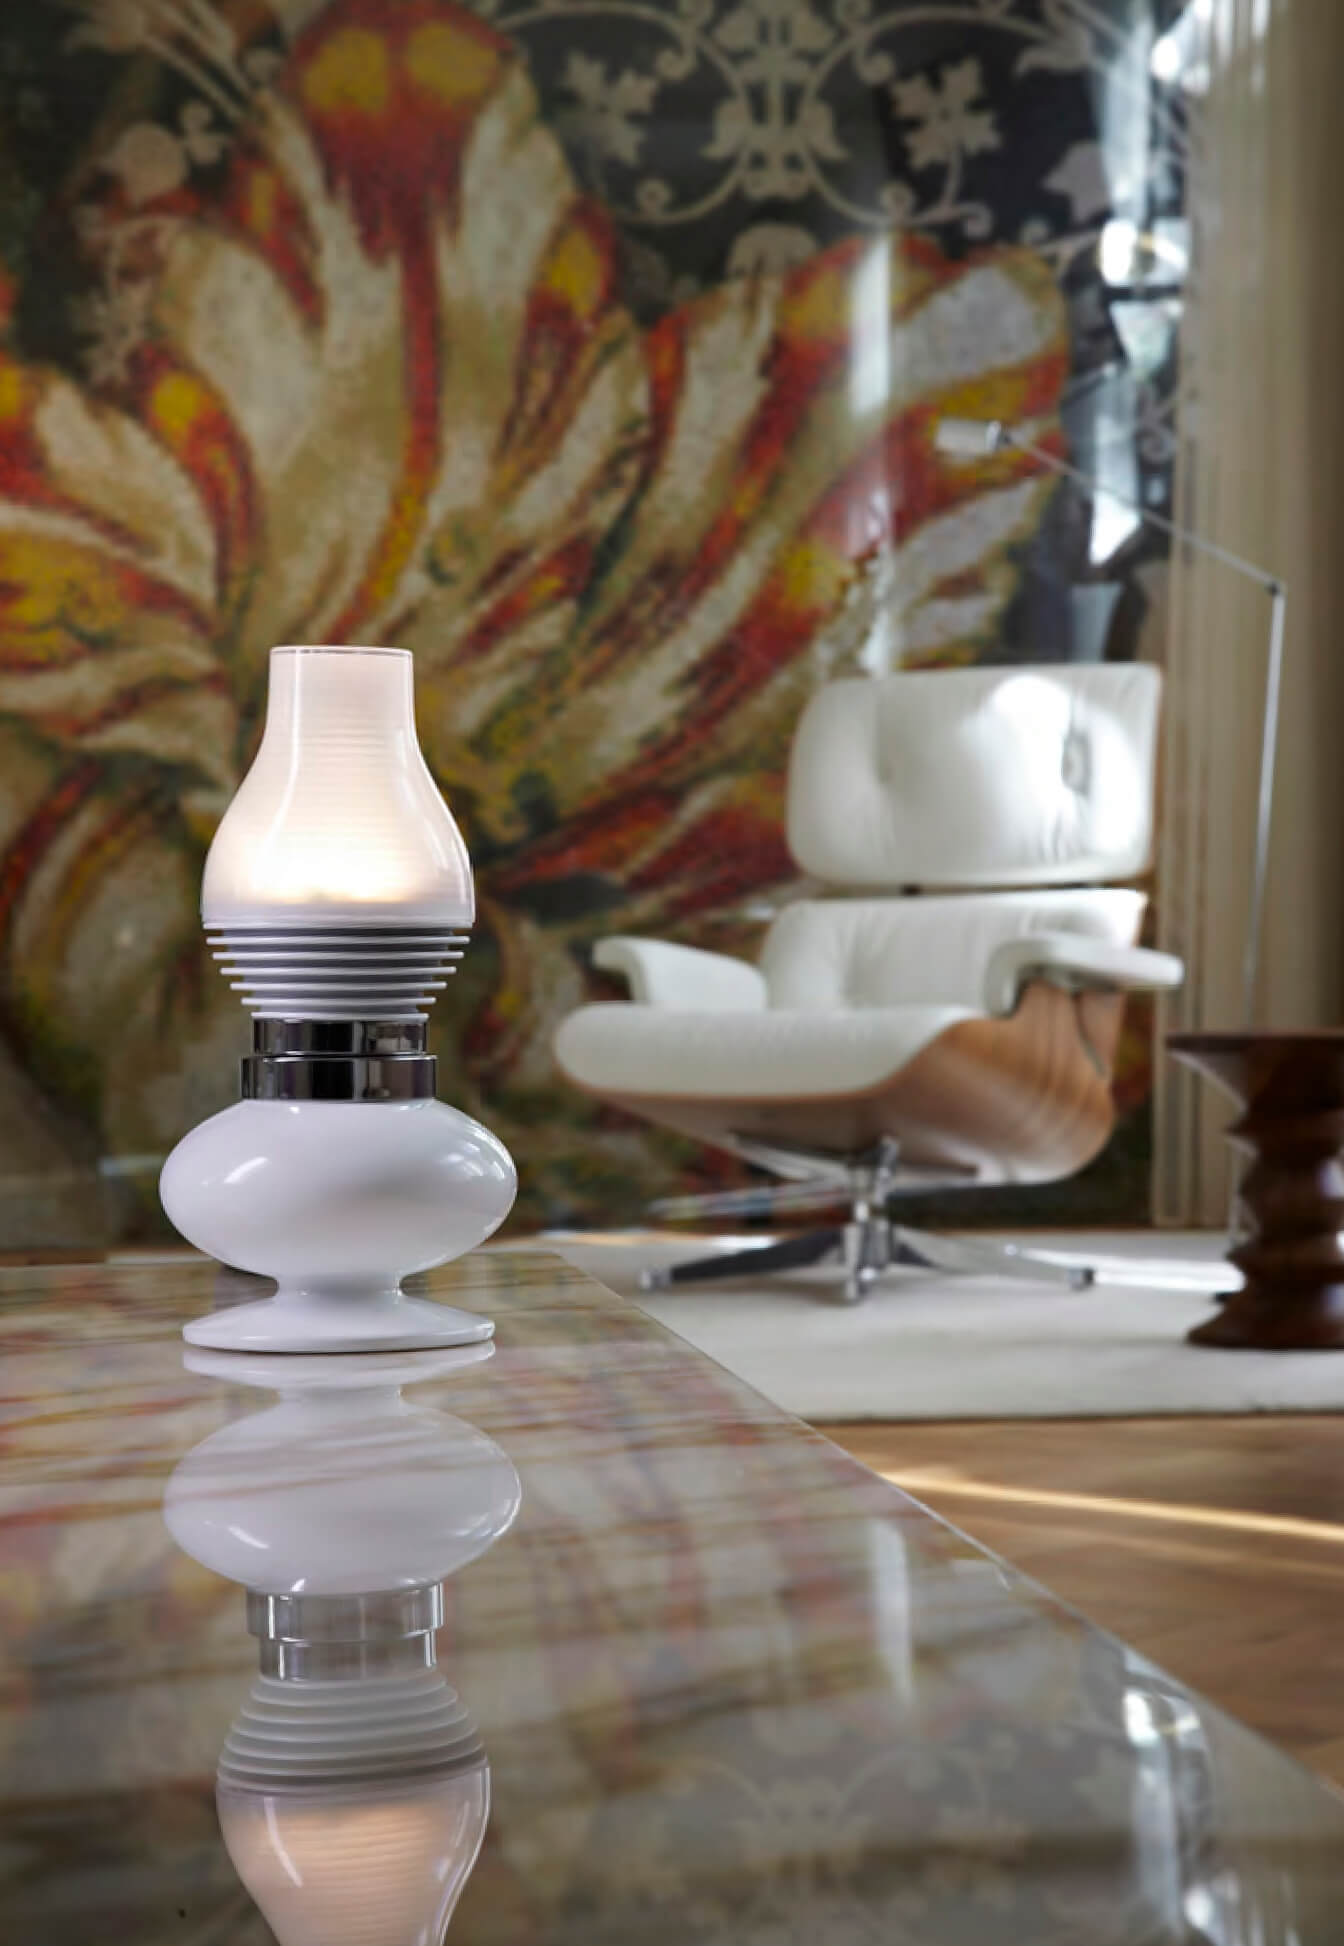 Alessilux-Paraffina-LED-light-bulb-silver-lounge chair.jpg